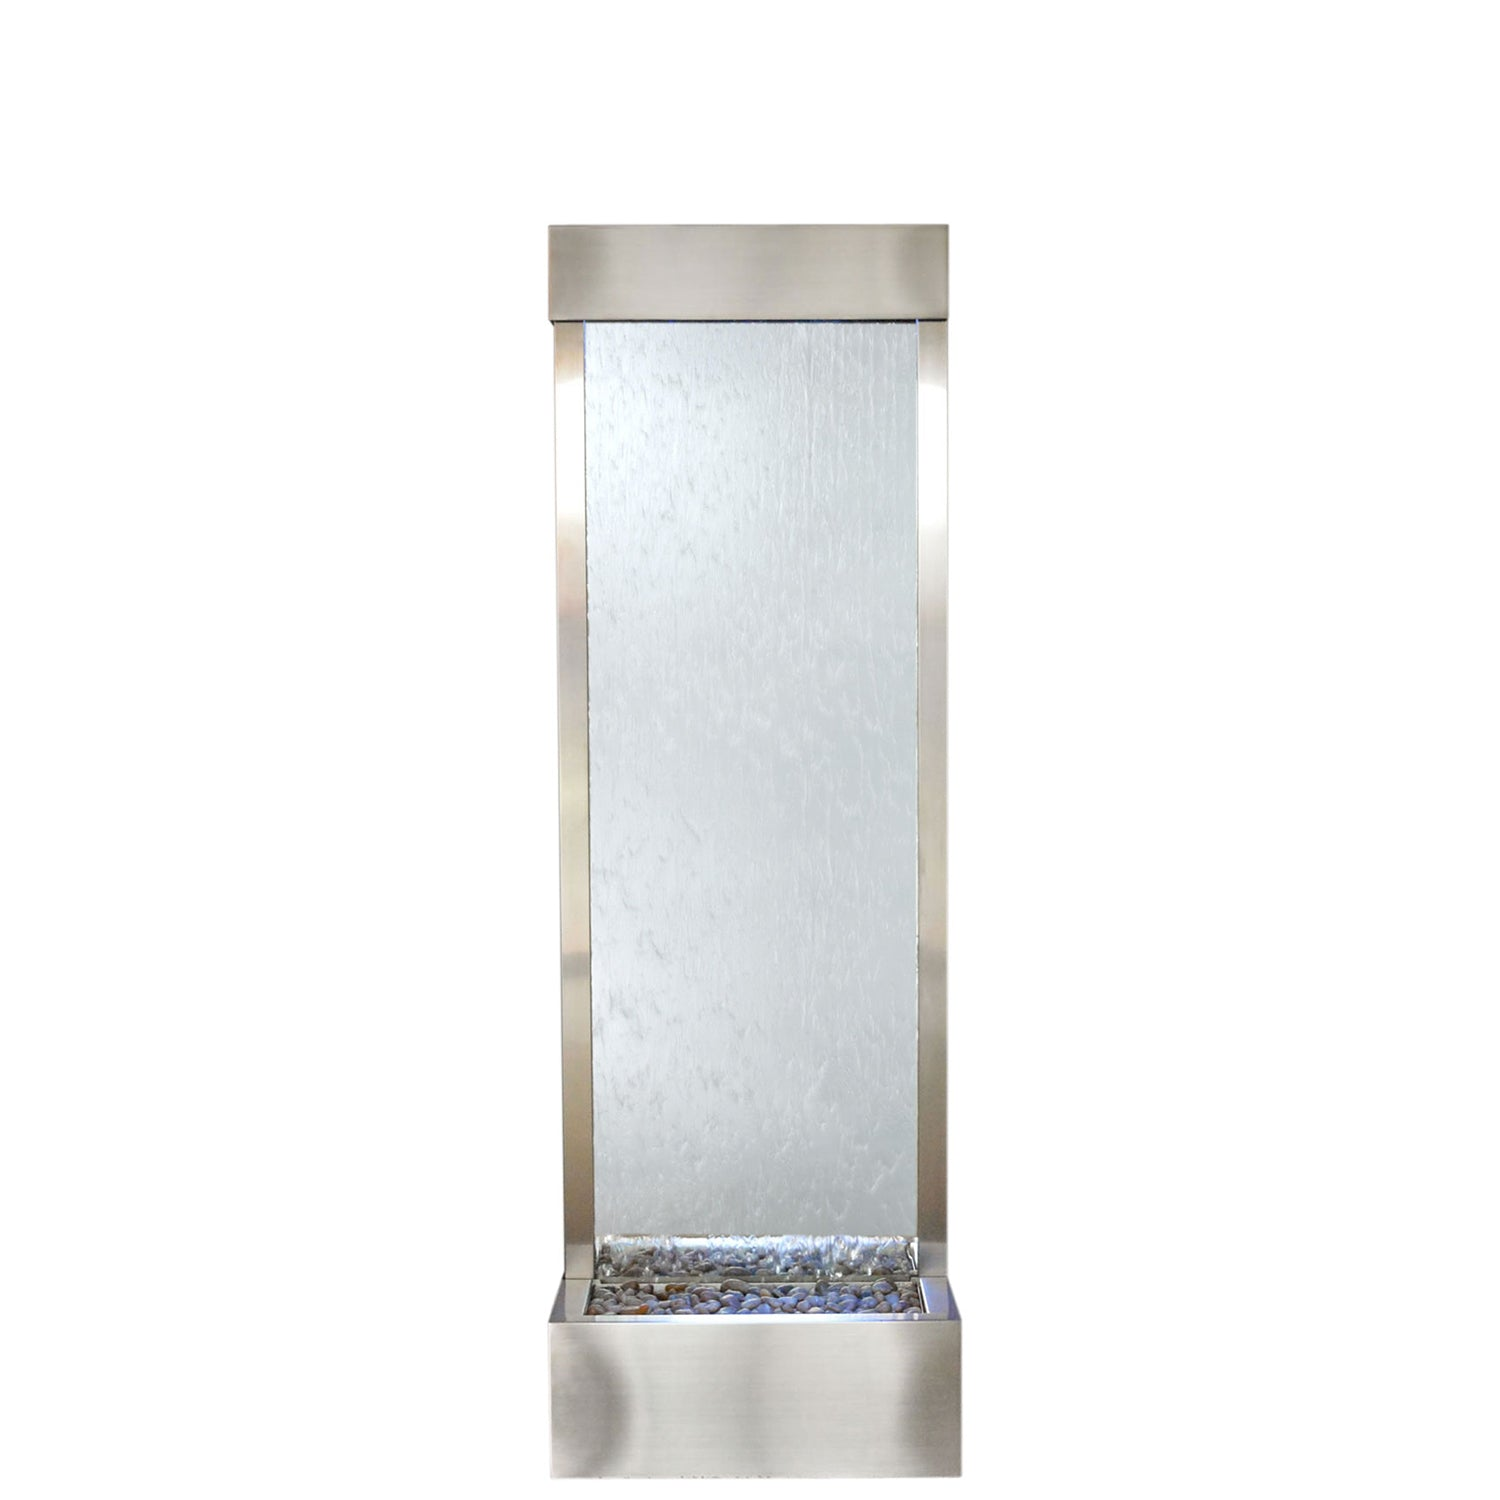 Gardenfall Fountain - Stainless with Silver Mirror